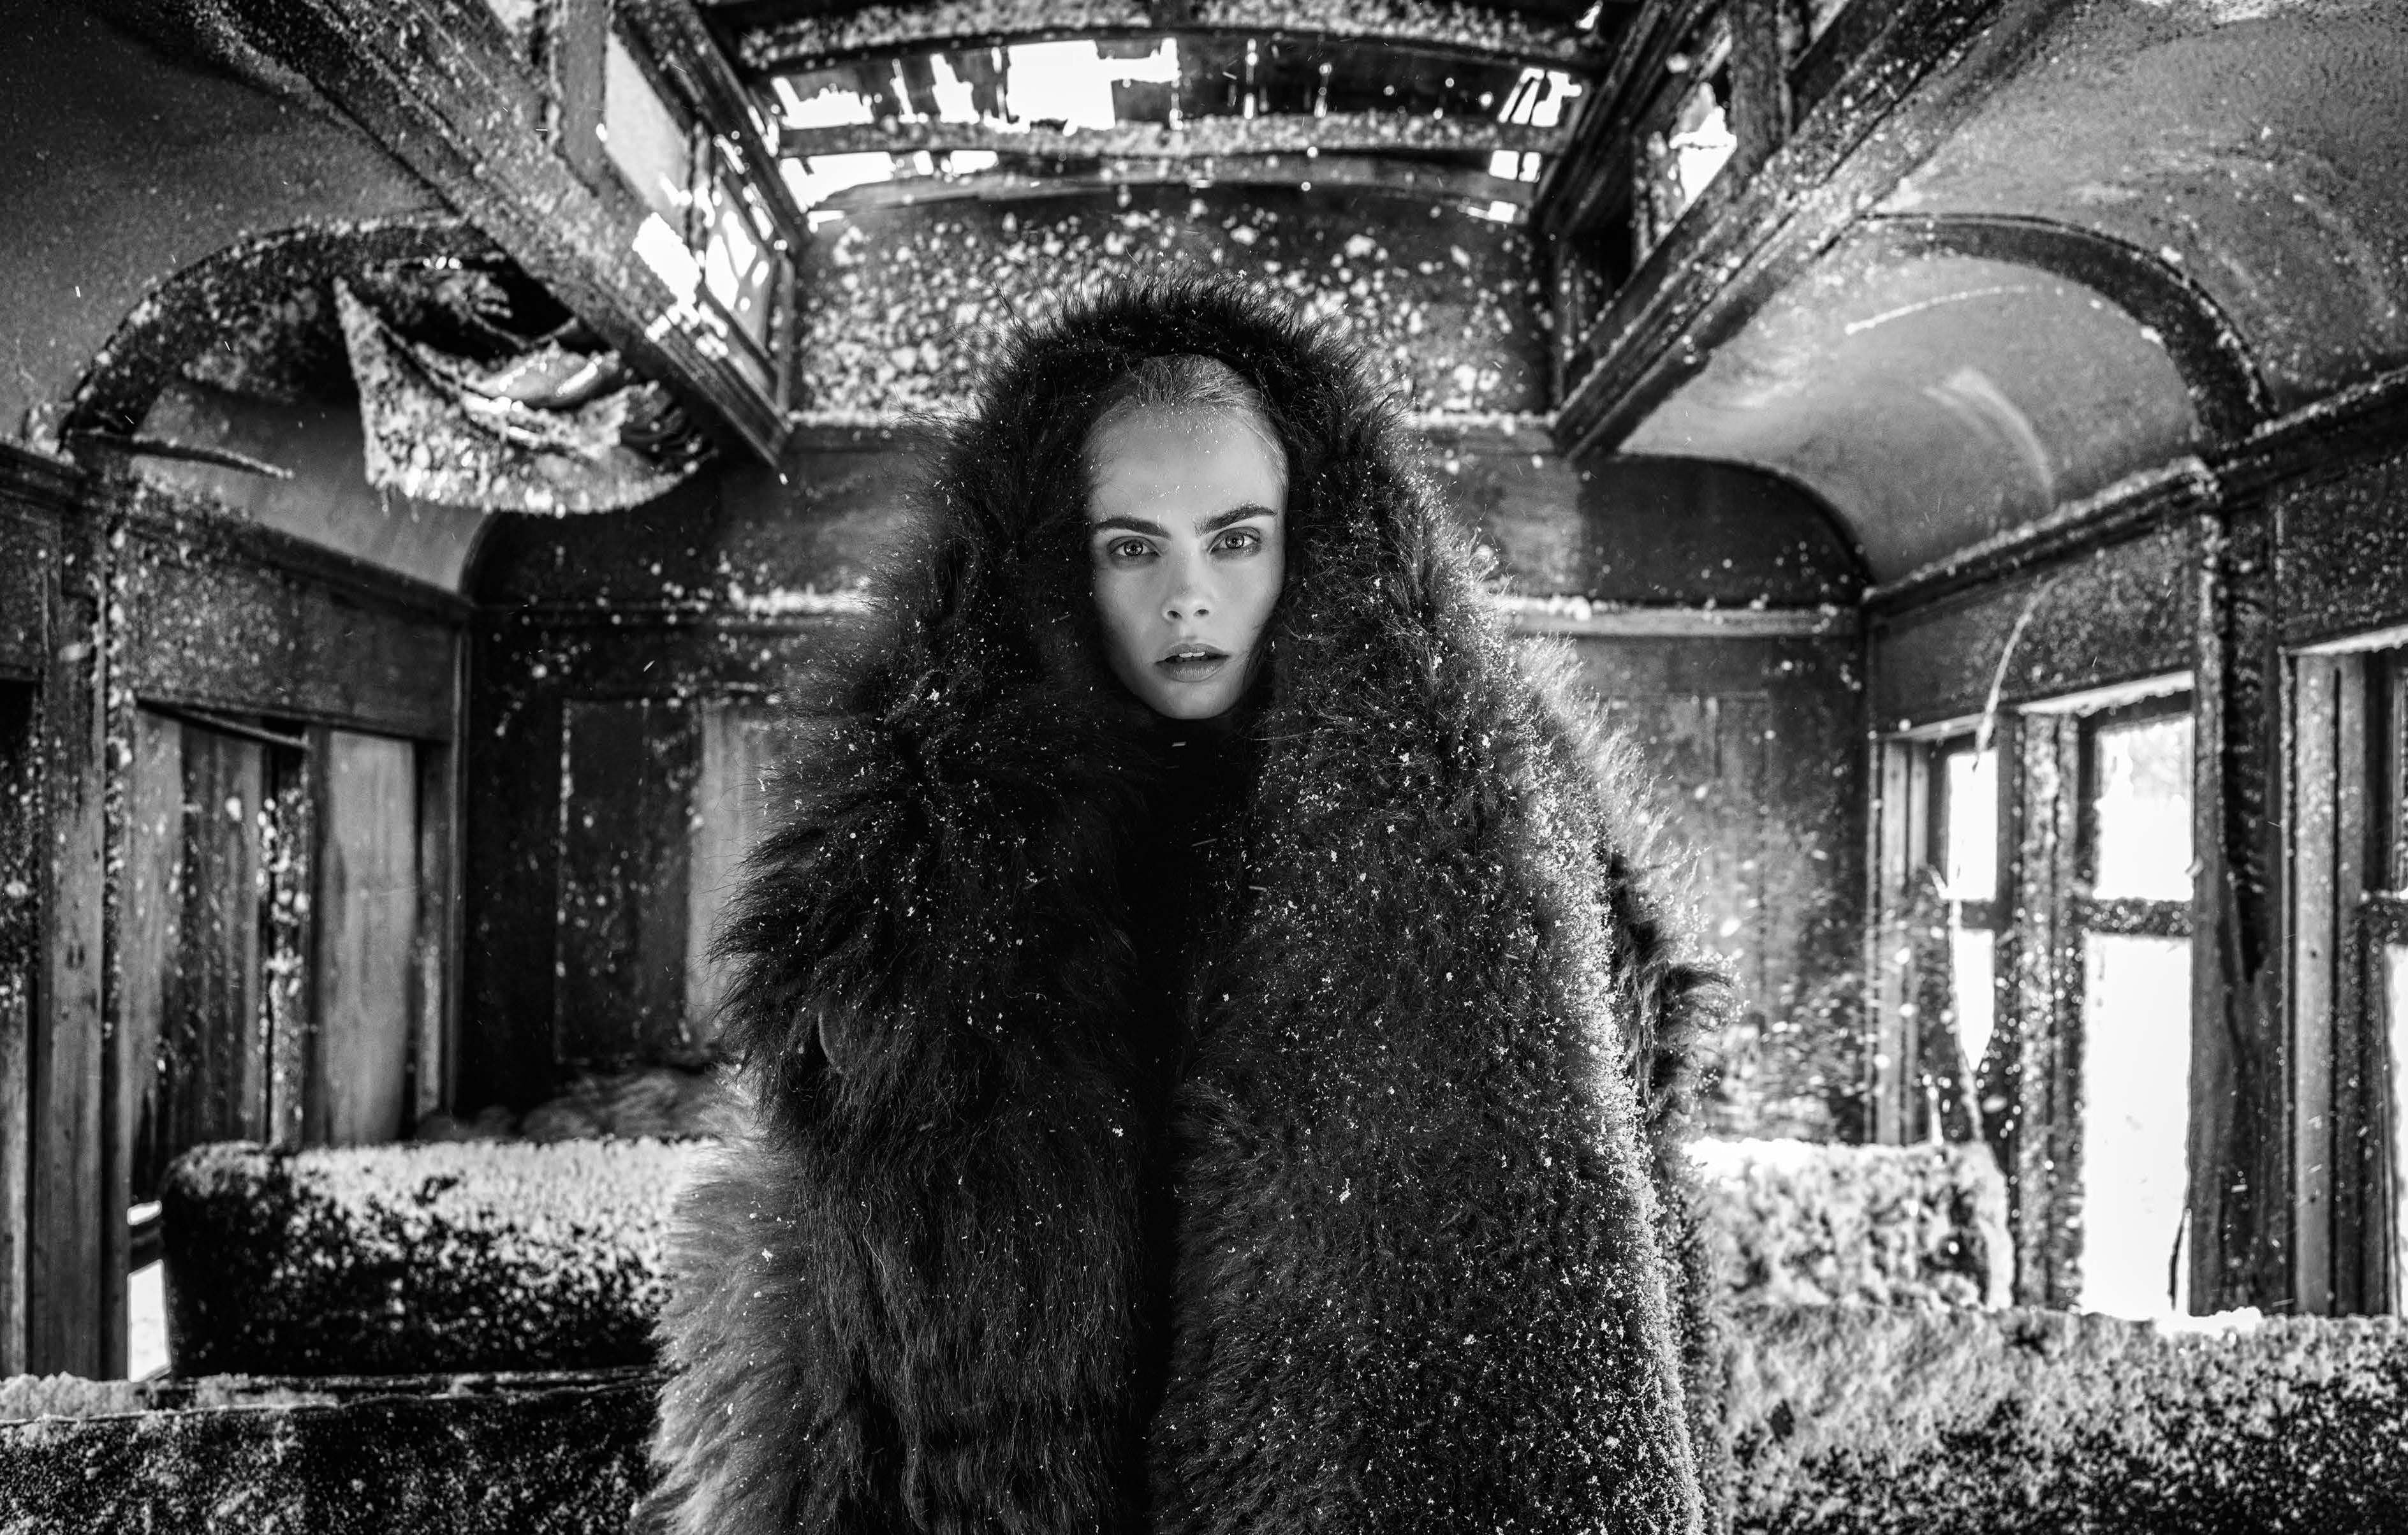 David Yarrow The Girl with the Lion Tattoo Archival Pigment Print